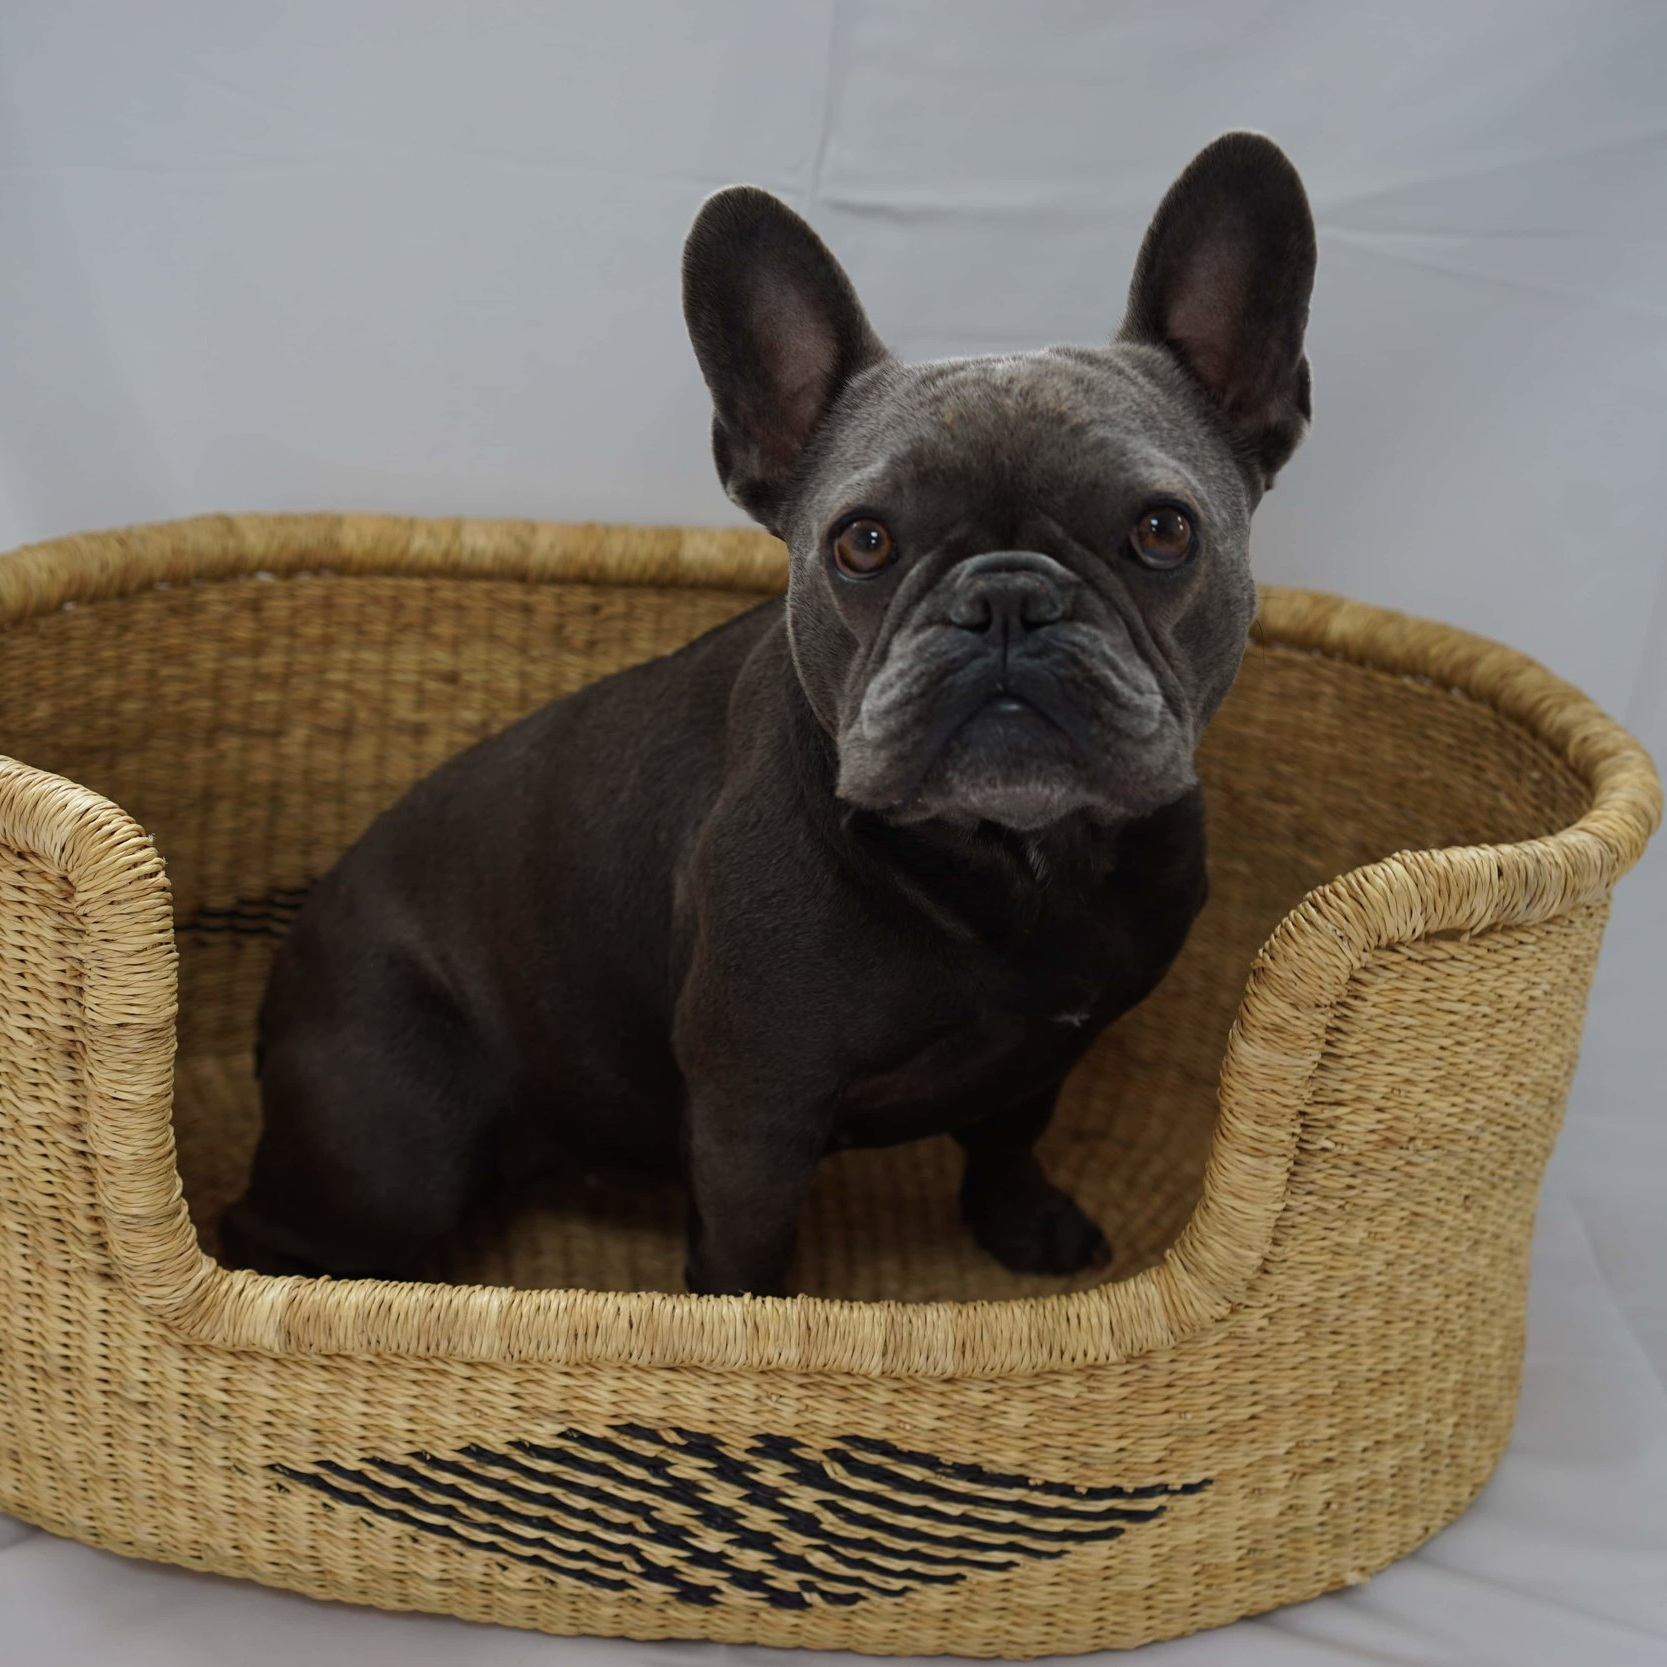 BEAU DOG BASKET - SMALLSize: 60cm x 42cm x 26cm Approx - £120